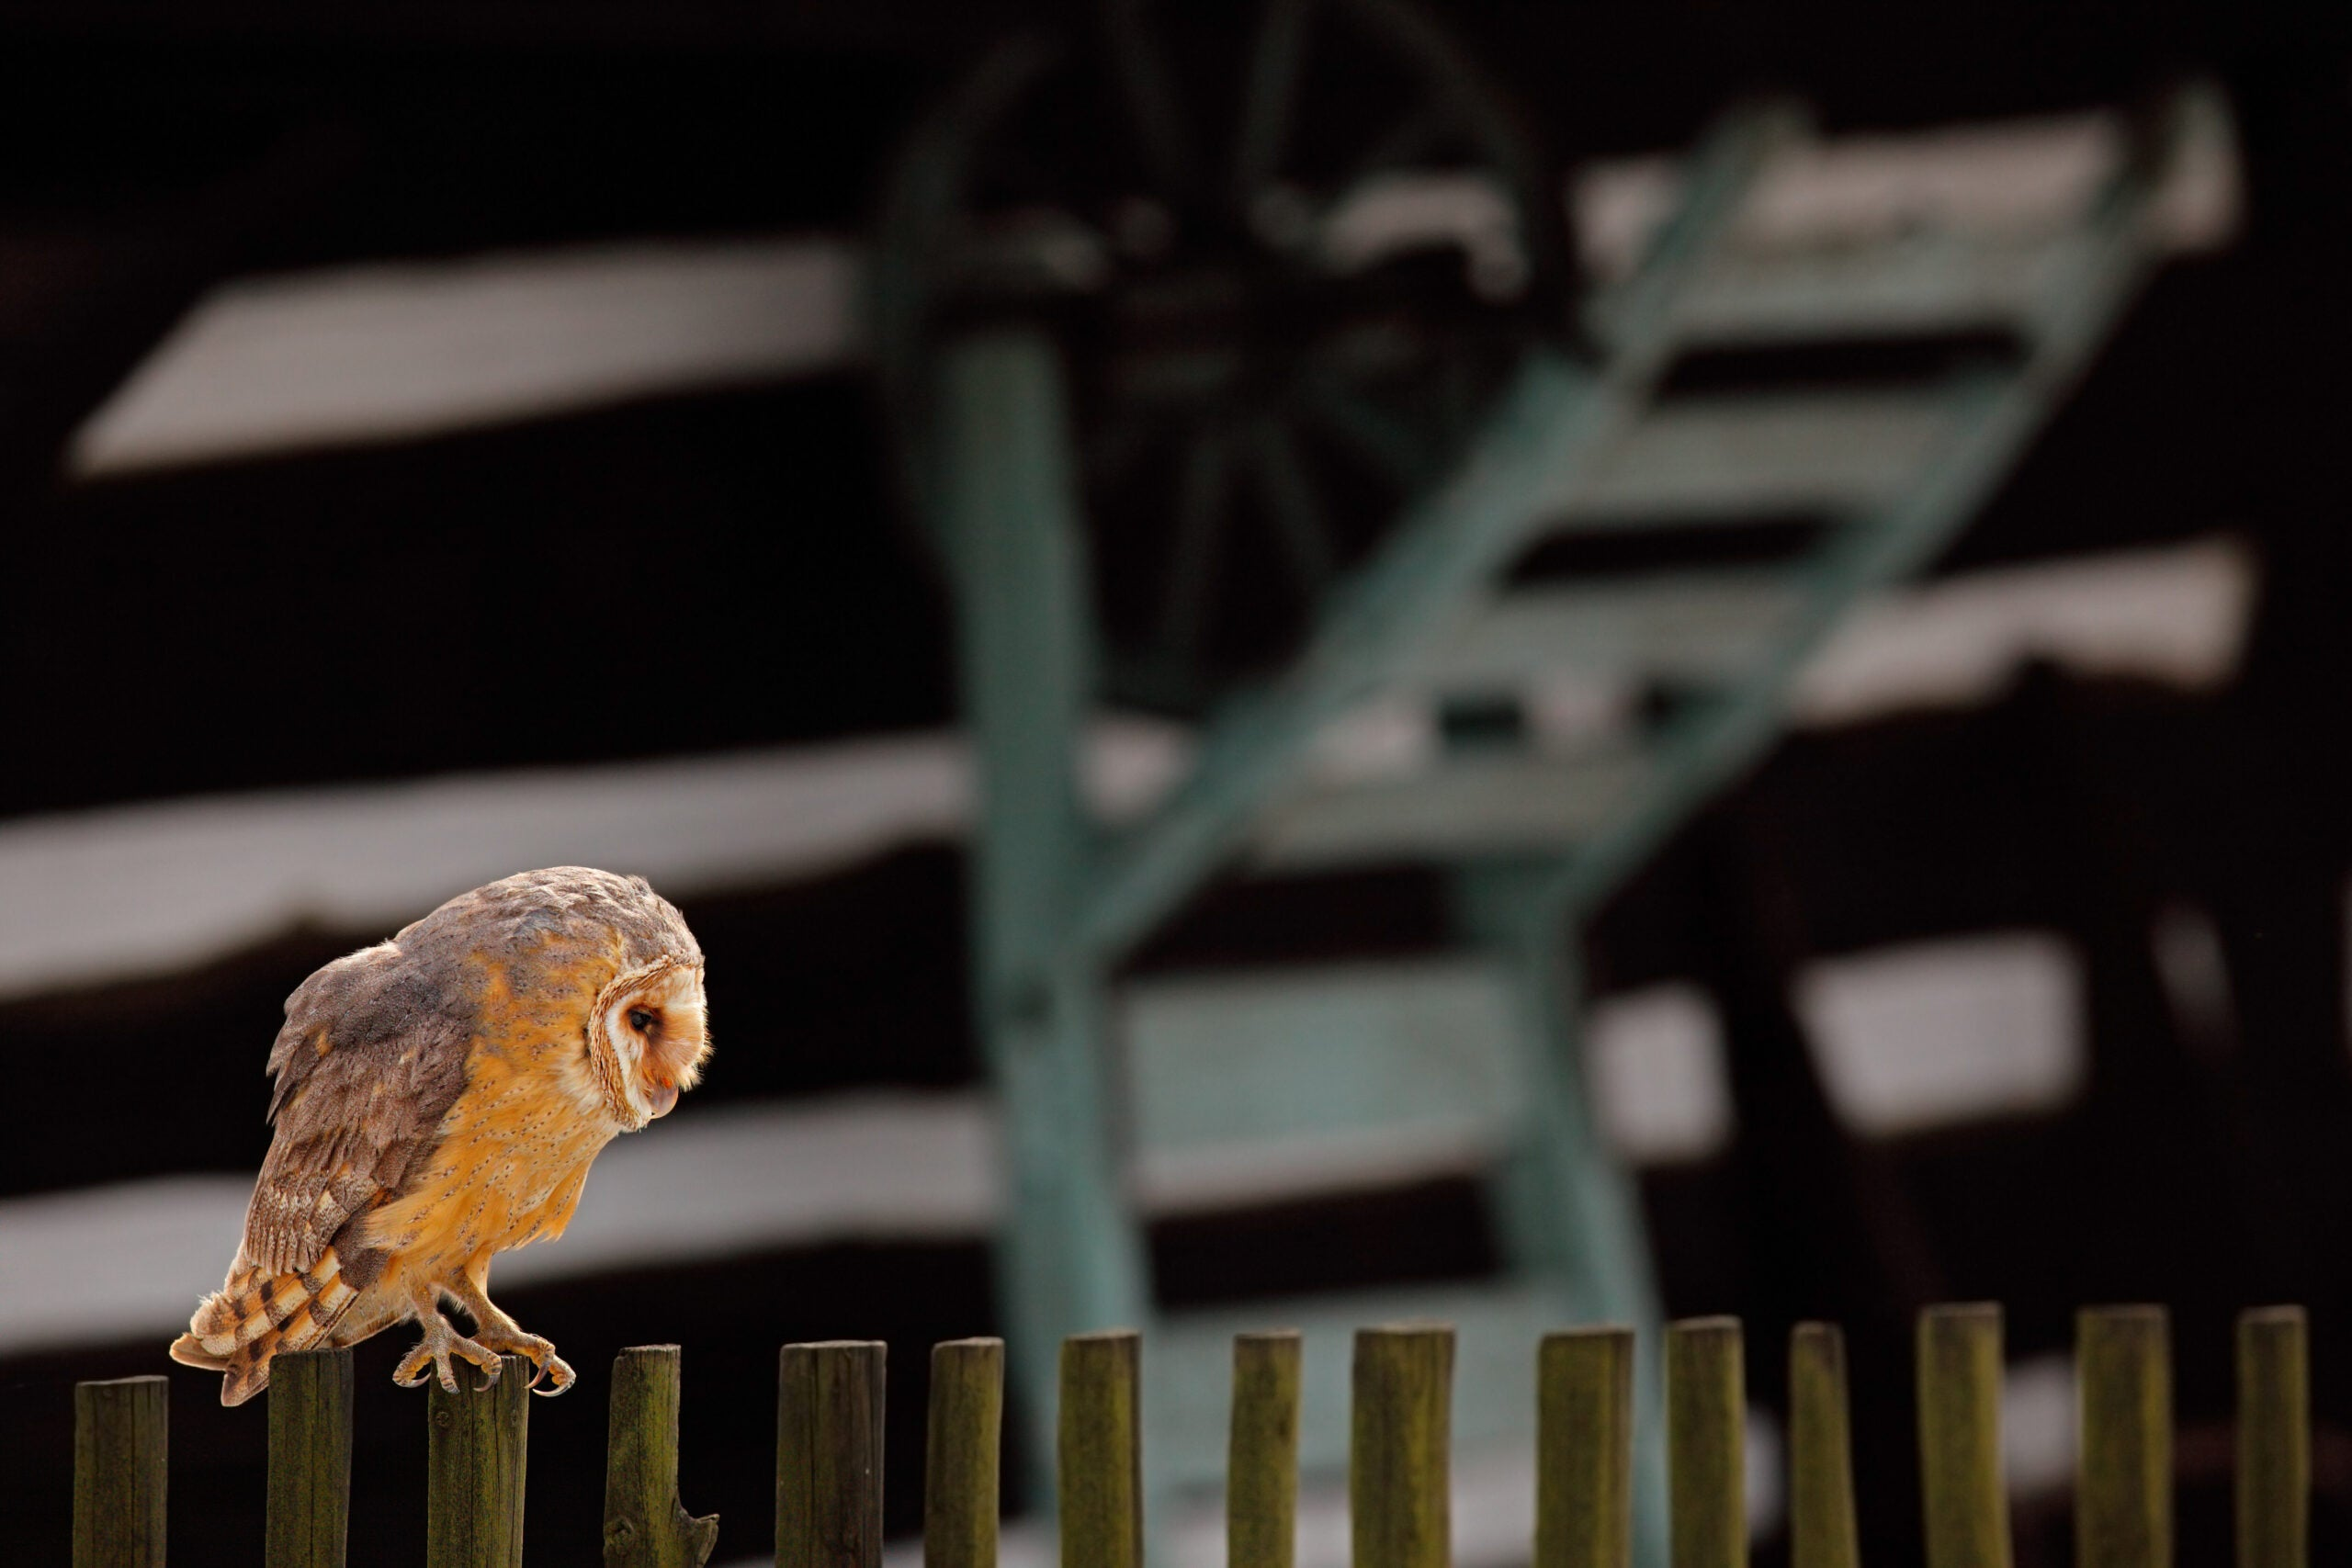 Wishing your city had more wildlife? Just look a little closer.